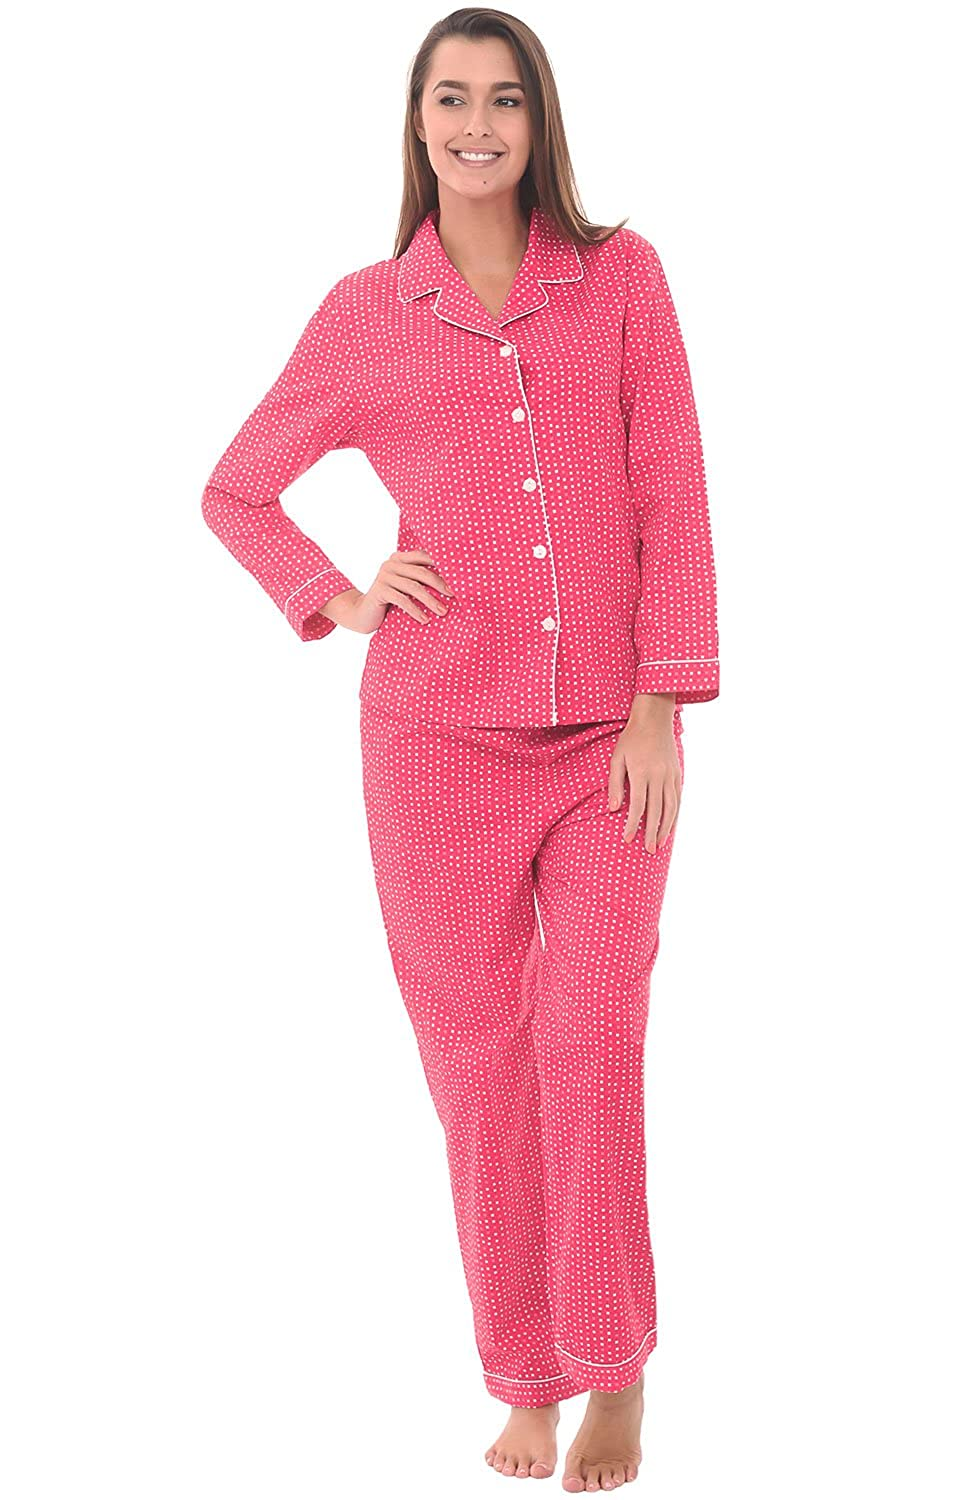 Alexander Del Rossa Woven Cotton Polka Dot Long Sleeved Pajama Set, 100% Cotton Pjs A0517-Dotted